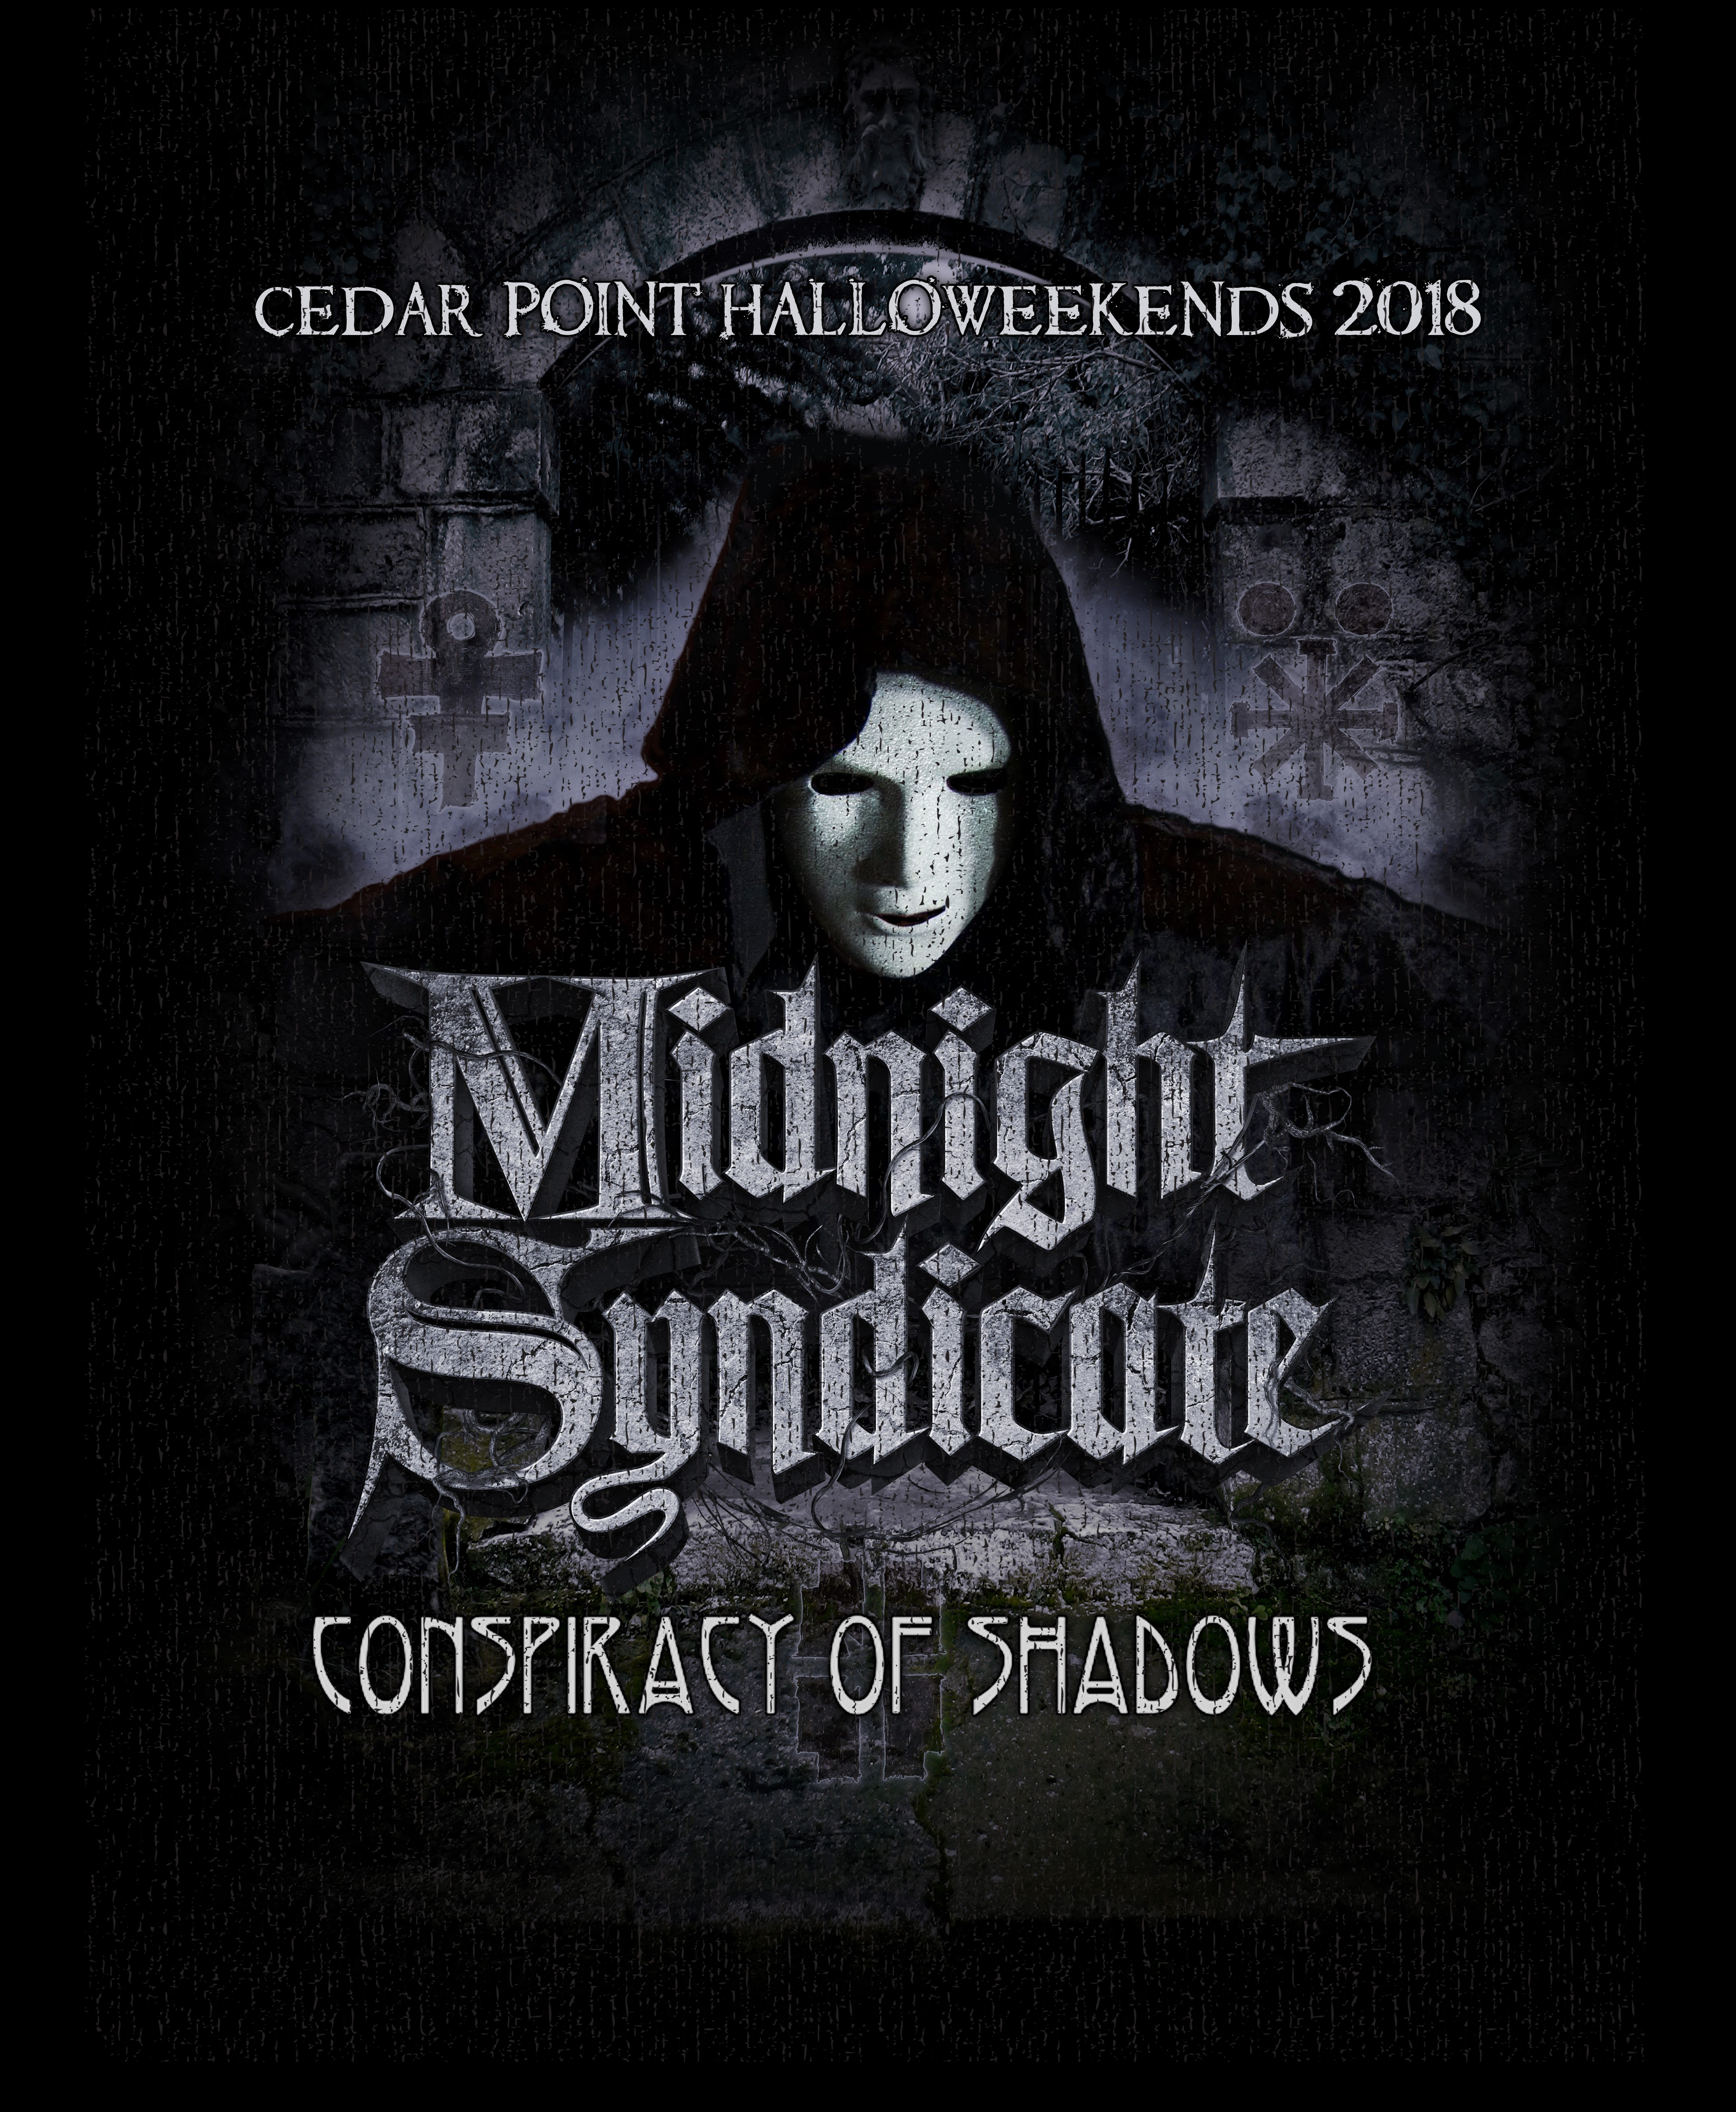 Midnight Syndicate Conspiracy of Shadows T-shirt